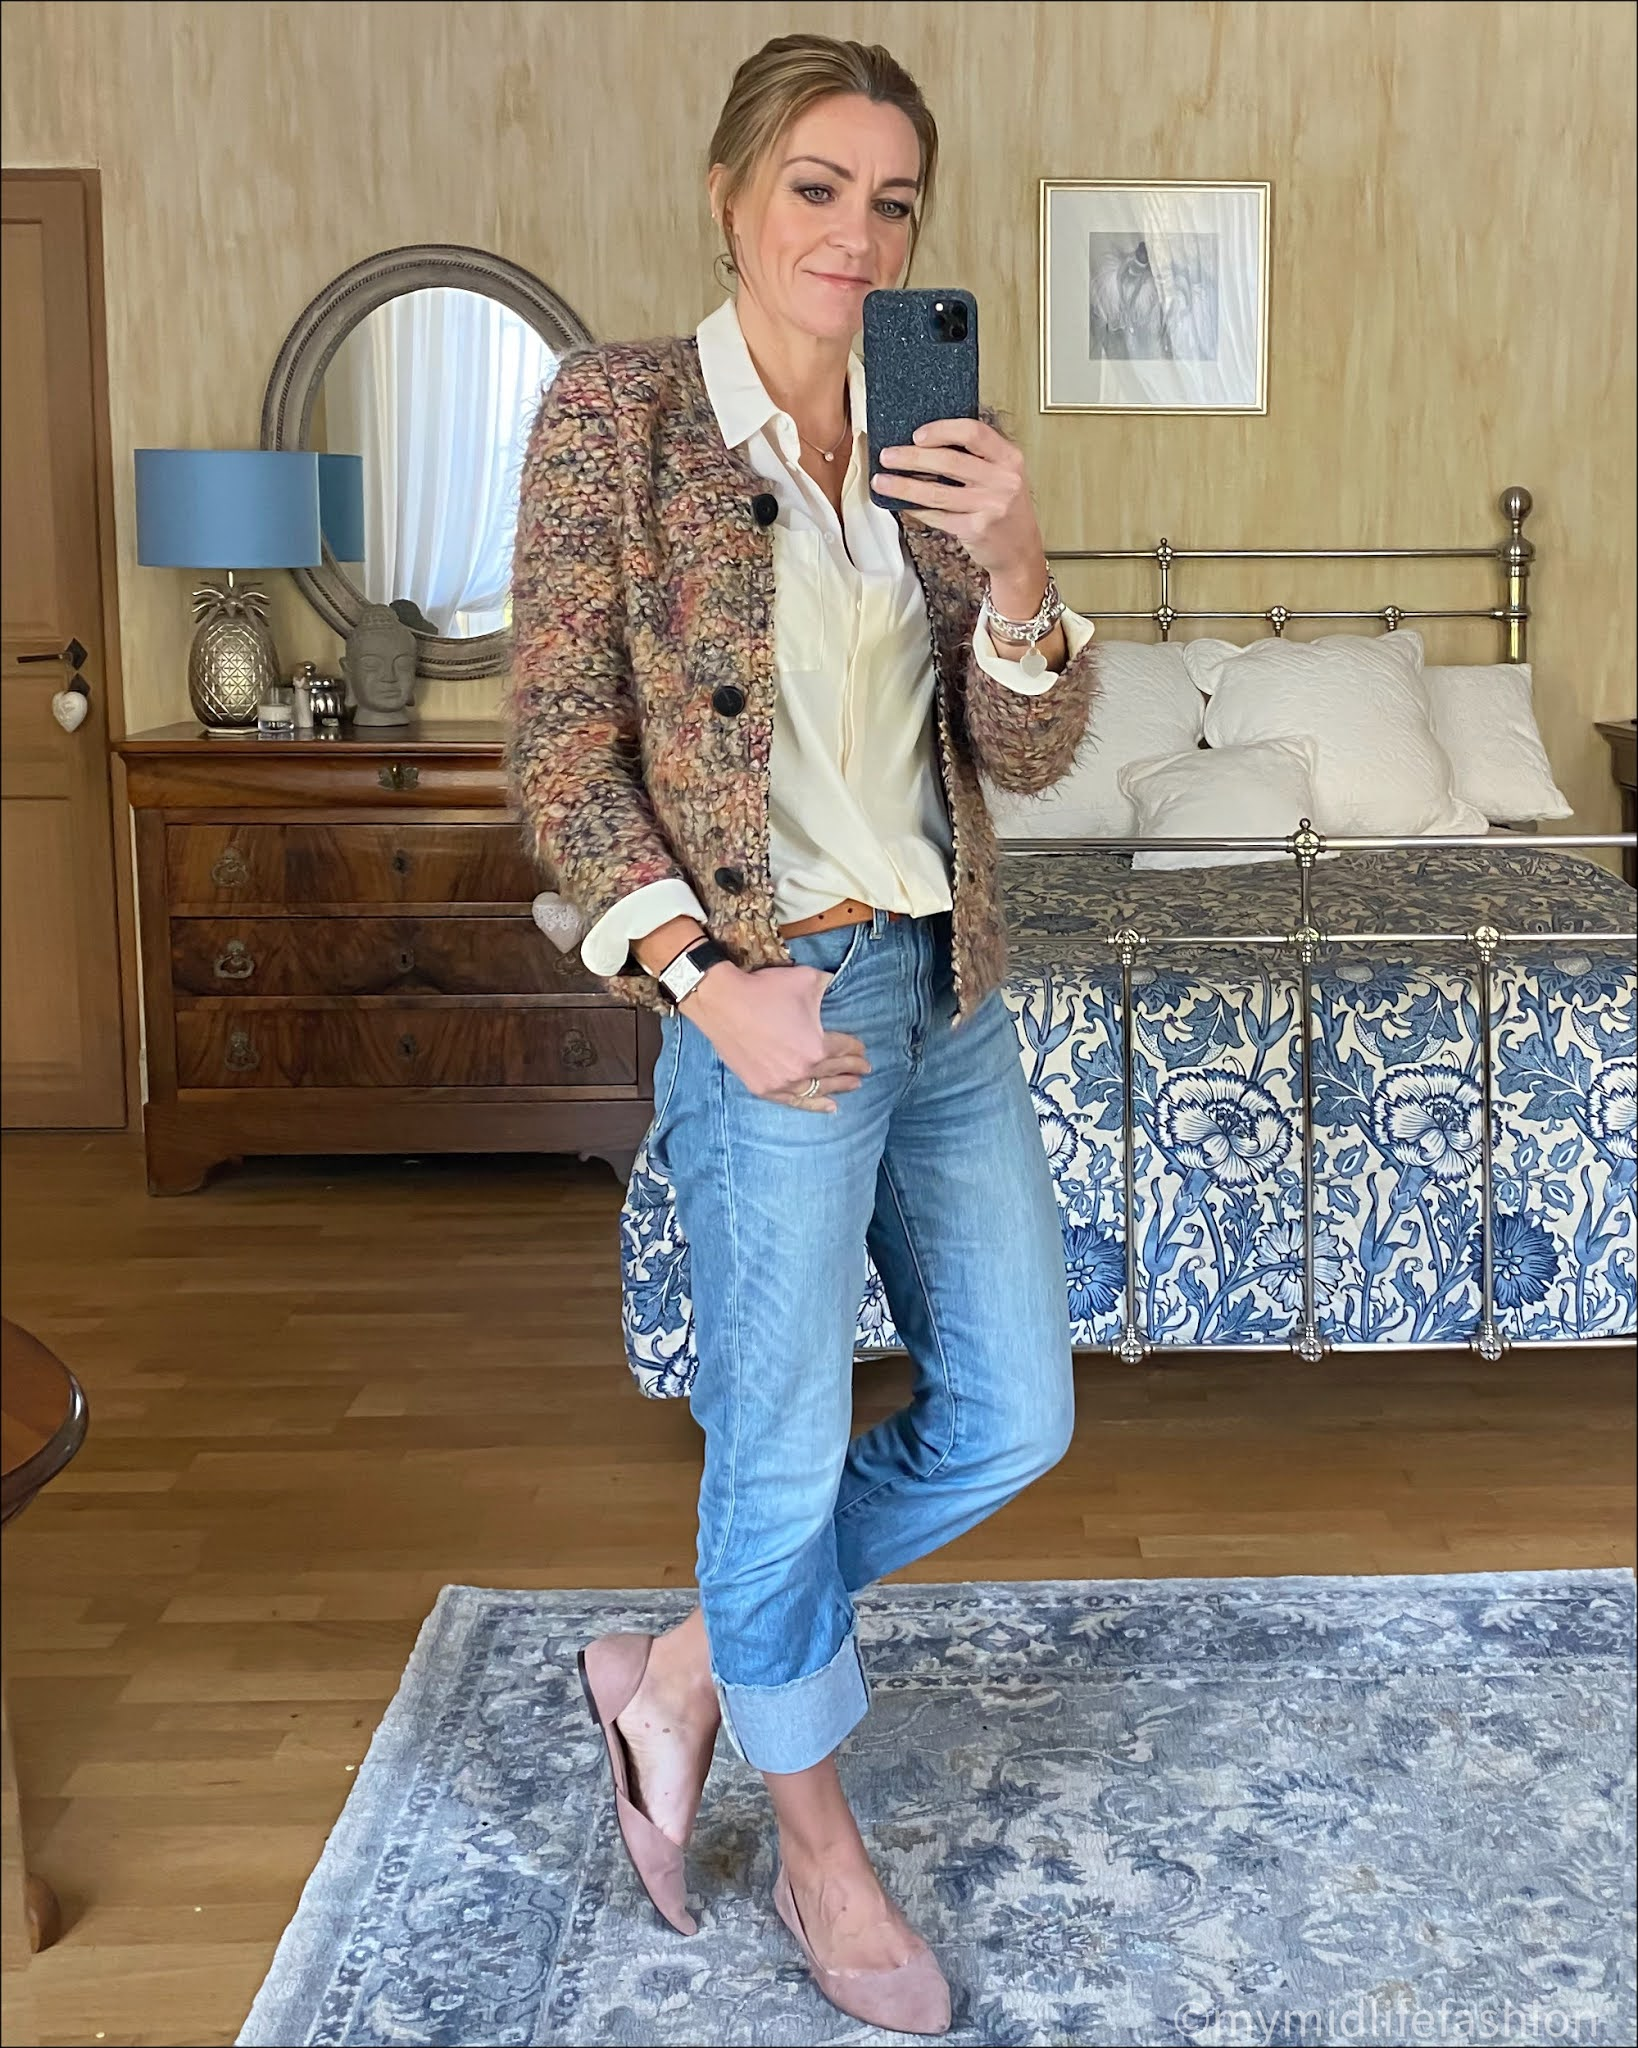 my midlife fashion, marks and Spencer silk shirt, iro knitted jacket, Massimo dutti leather belt, j crew turn up boyfriend jeans, hm ballet pumps